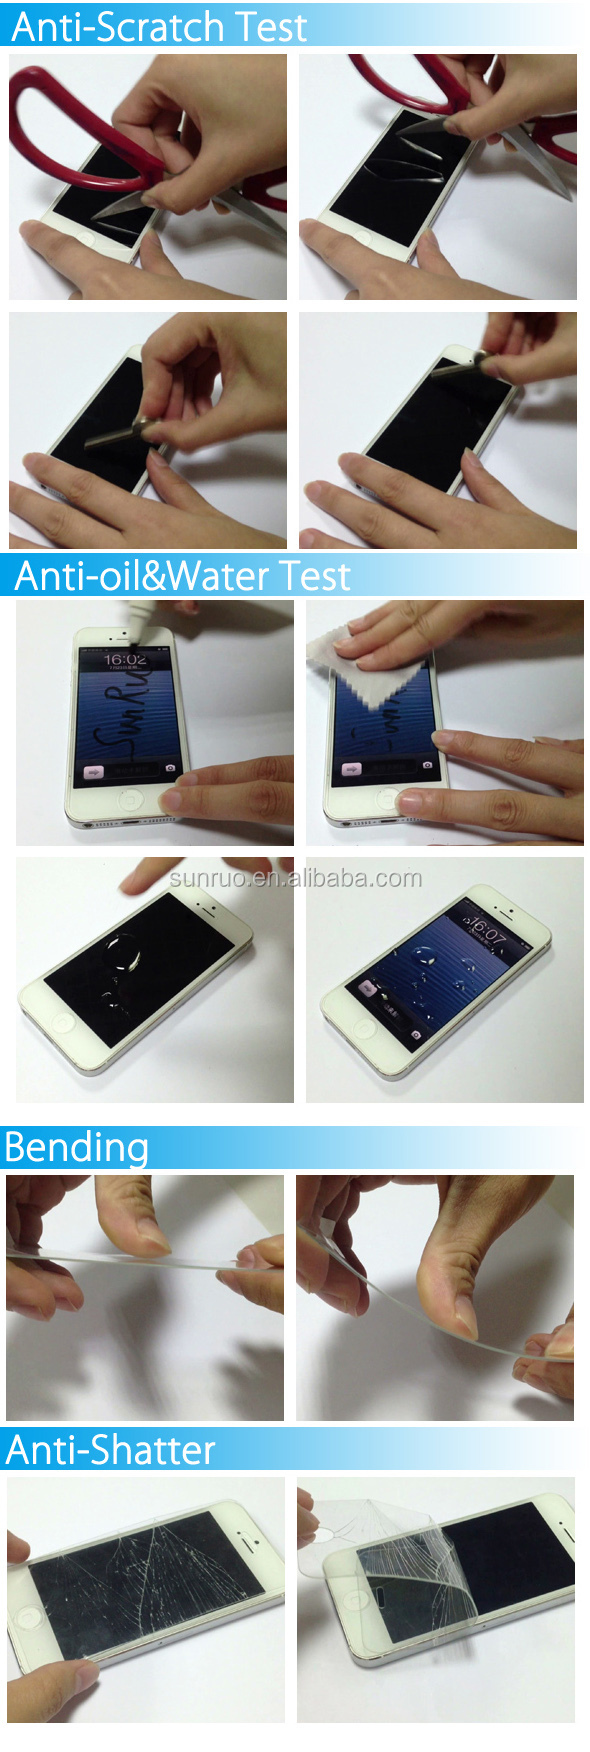 New anti radiation tempered glass screen protector for iPhone 6/7/8